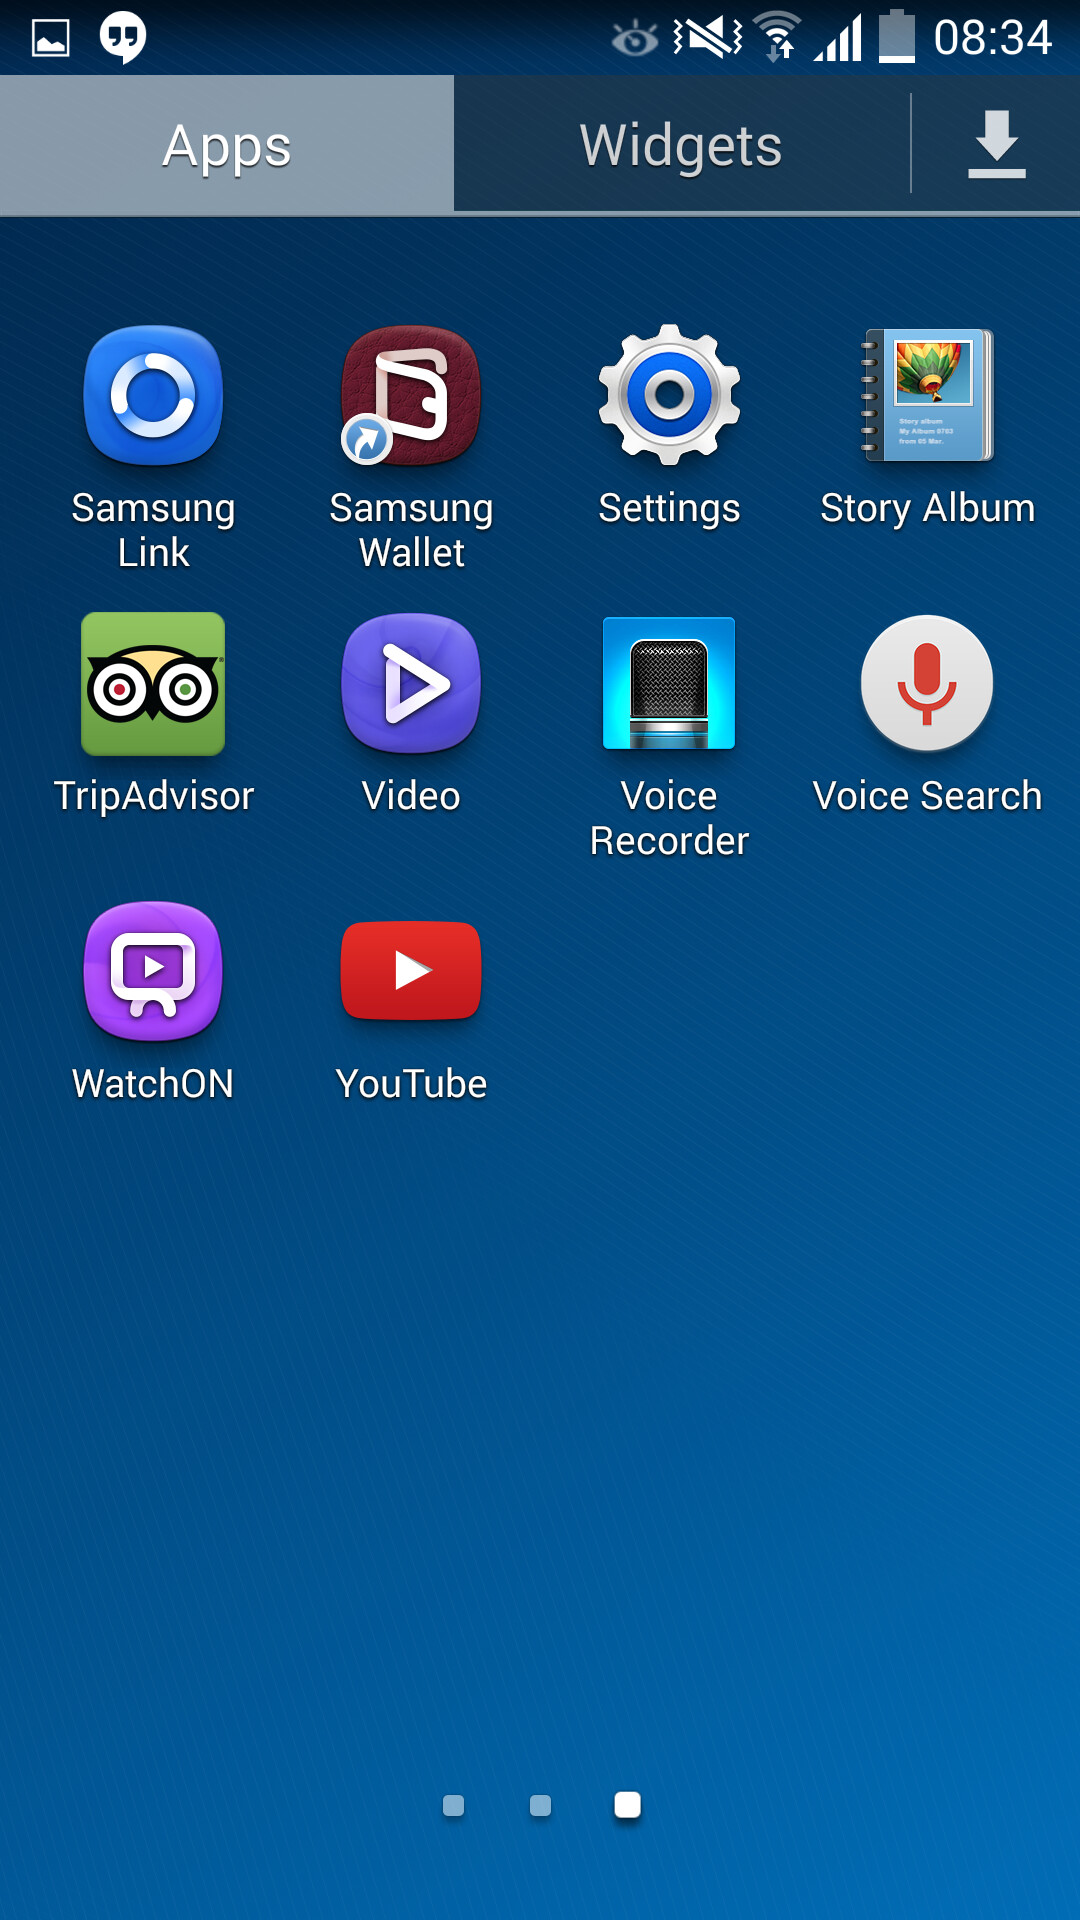 Android Kitkat Update Leaks For Galaxy S4 Here Are The